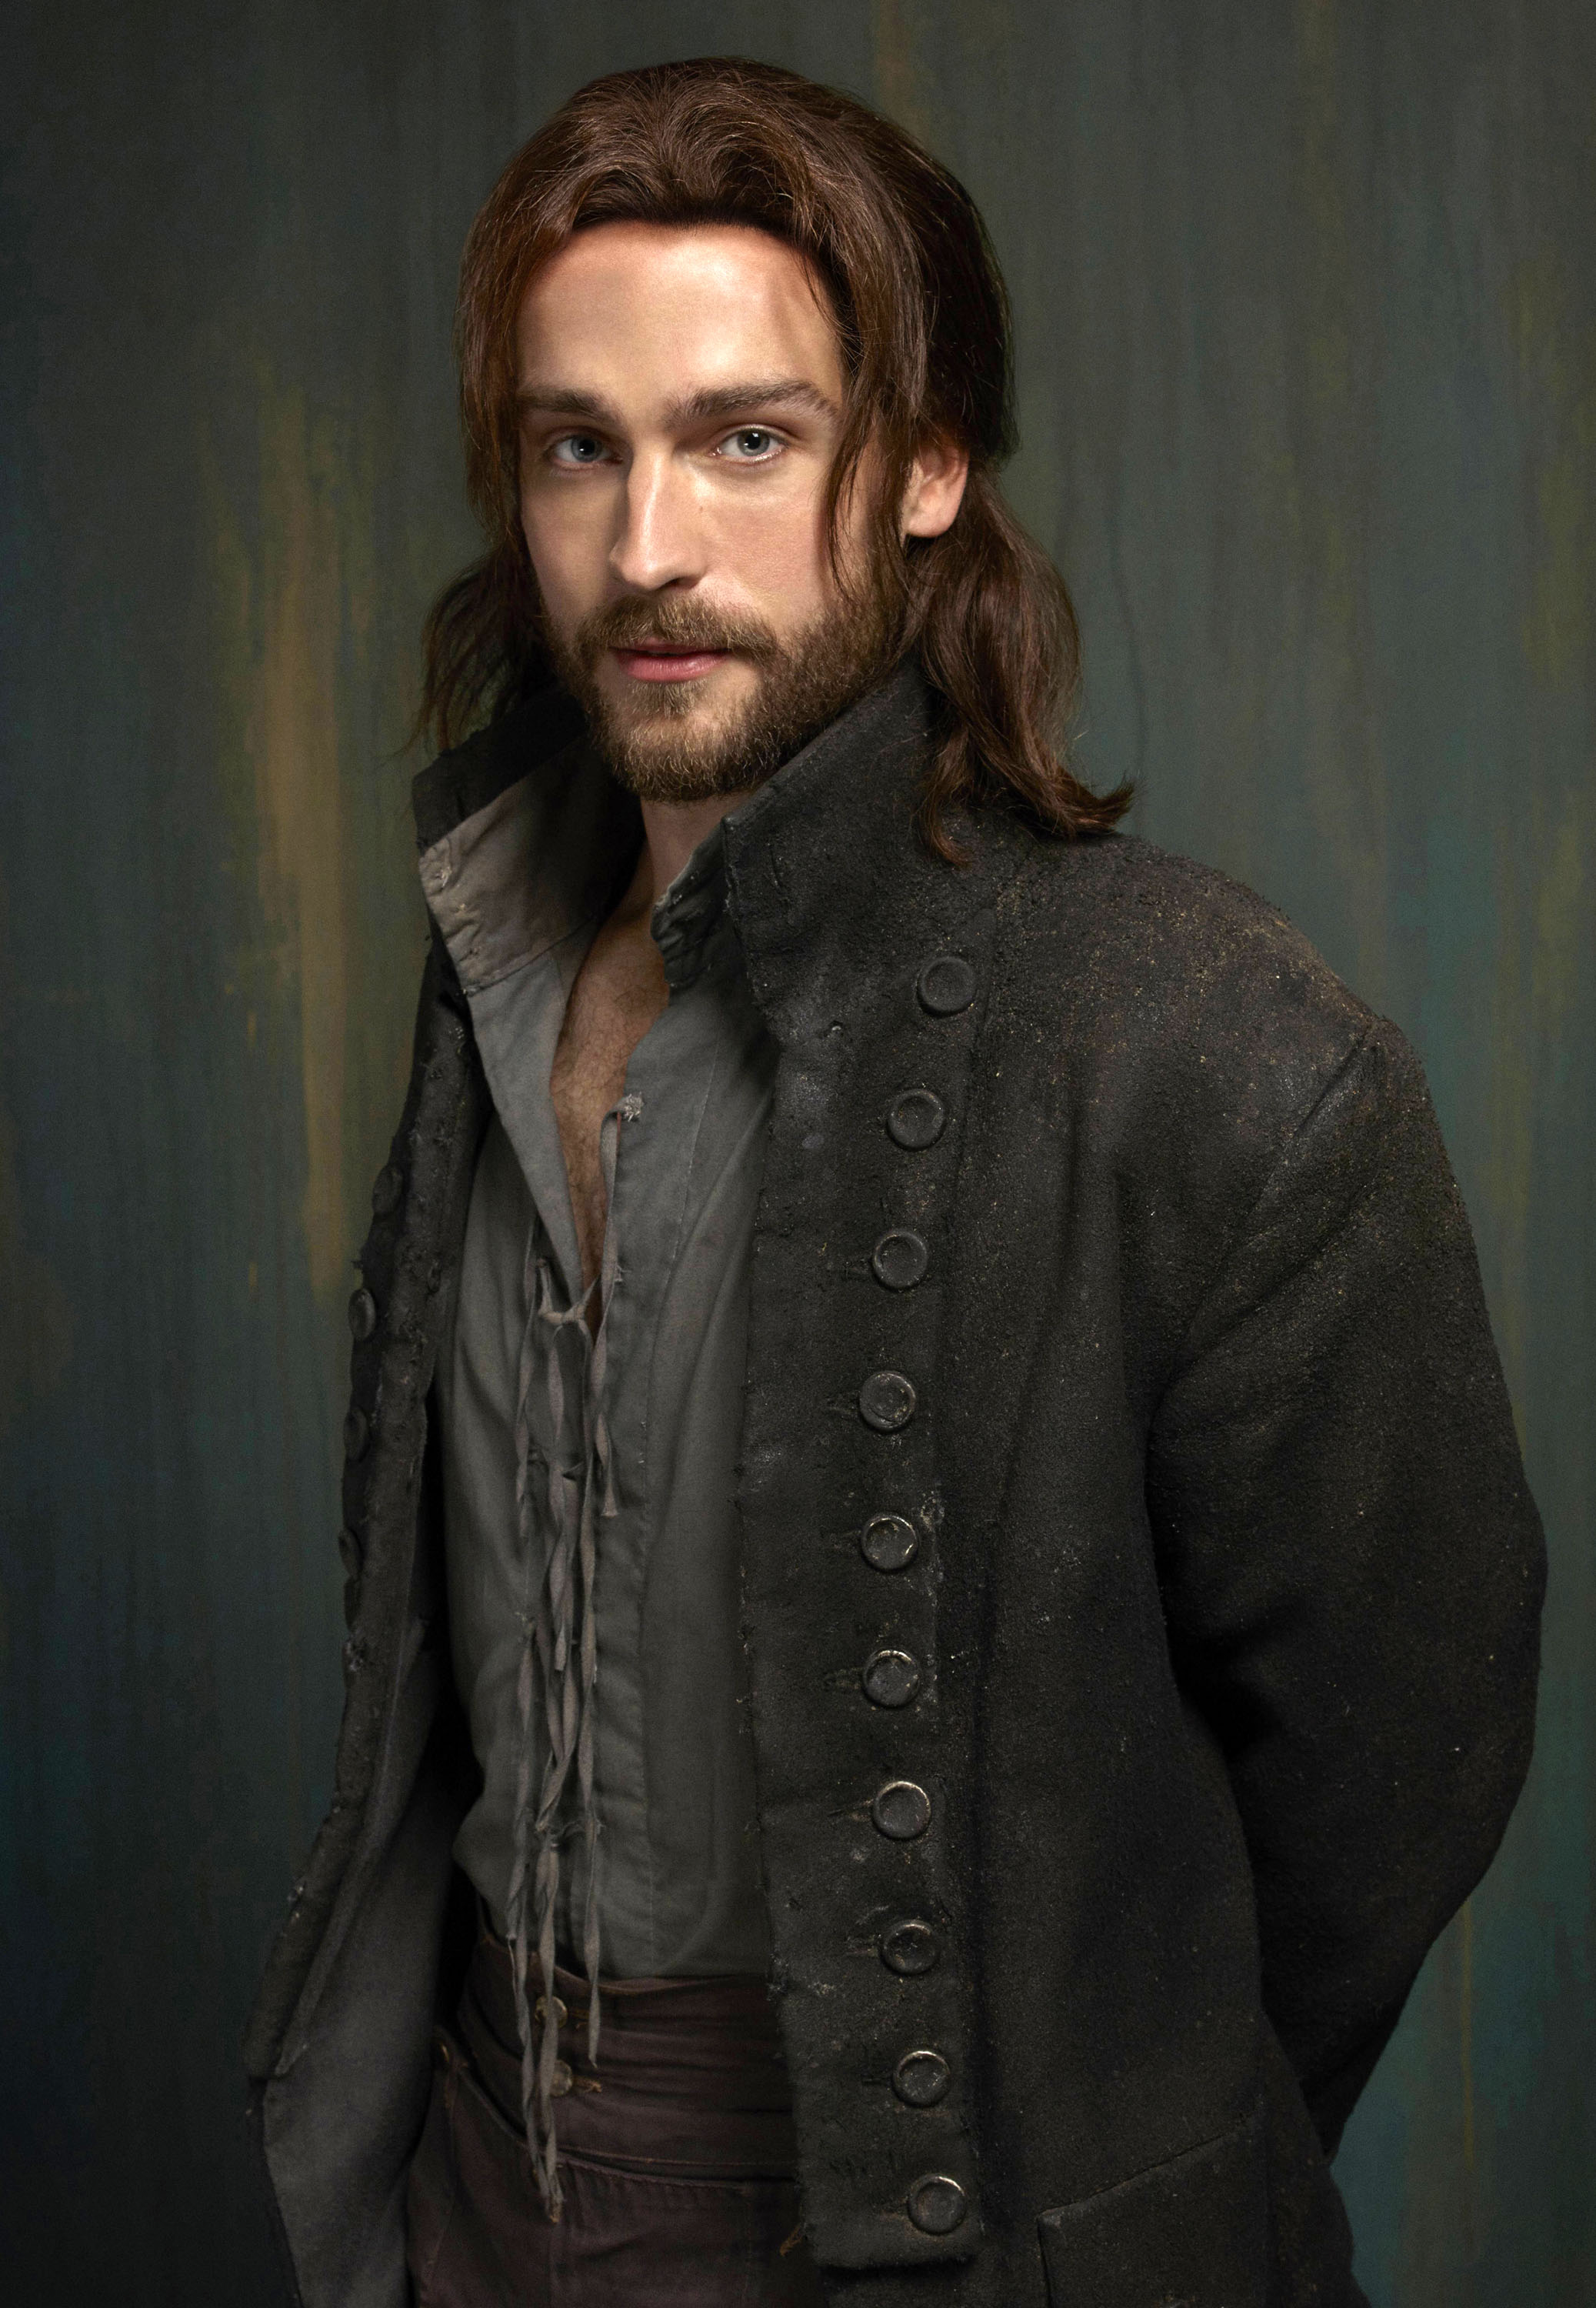 Tom Mison (born 1982) nudes (56 pics) Sexy, YouTube, bra